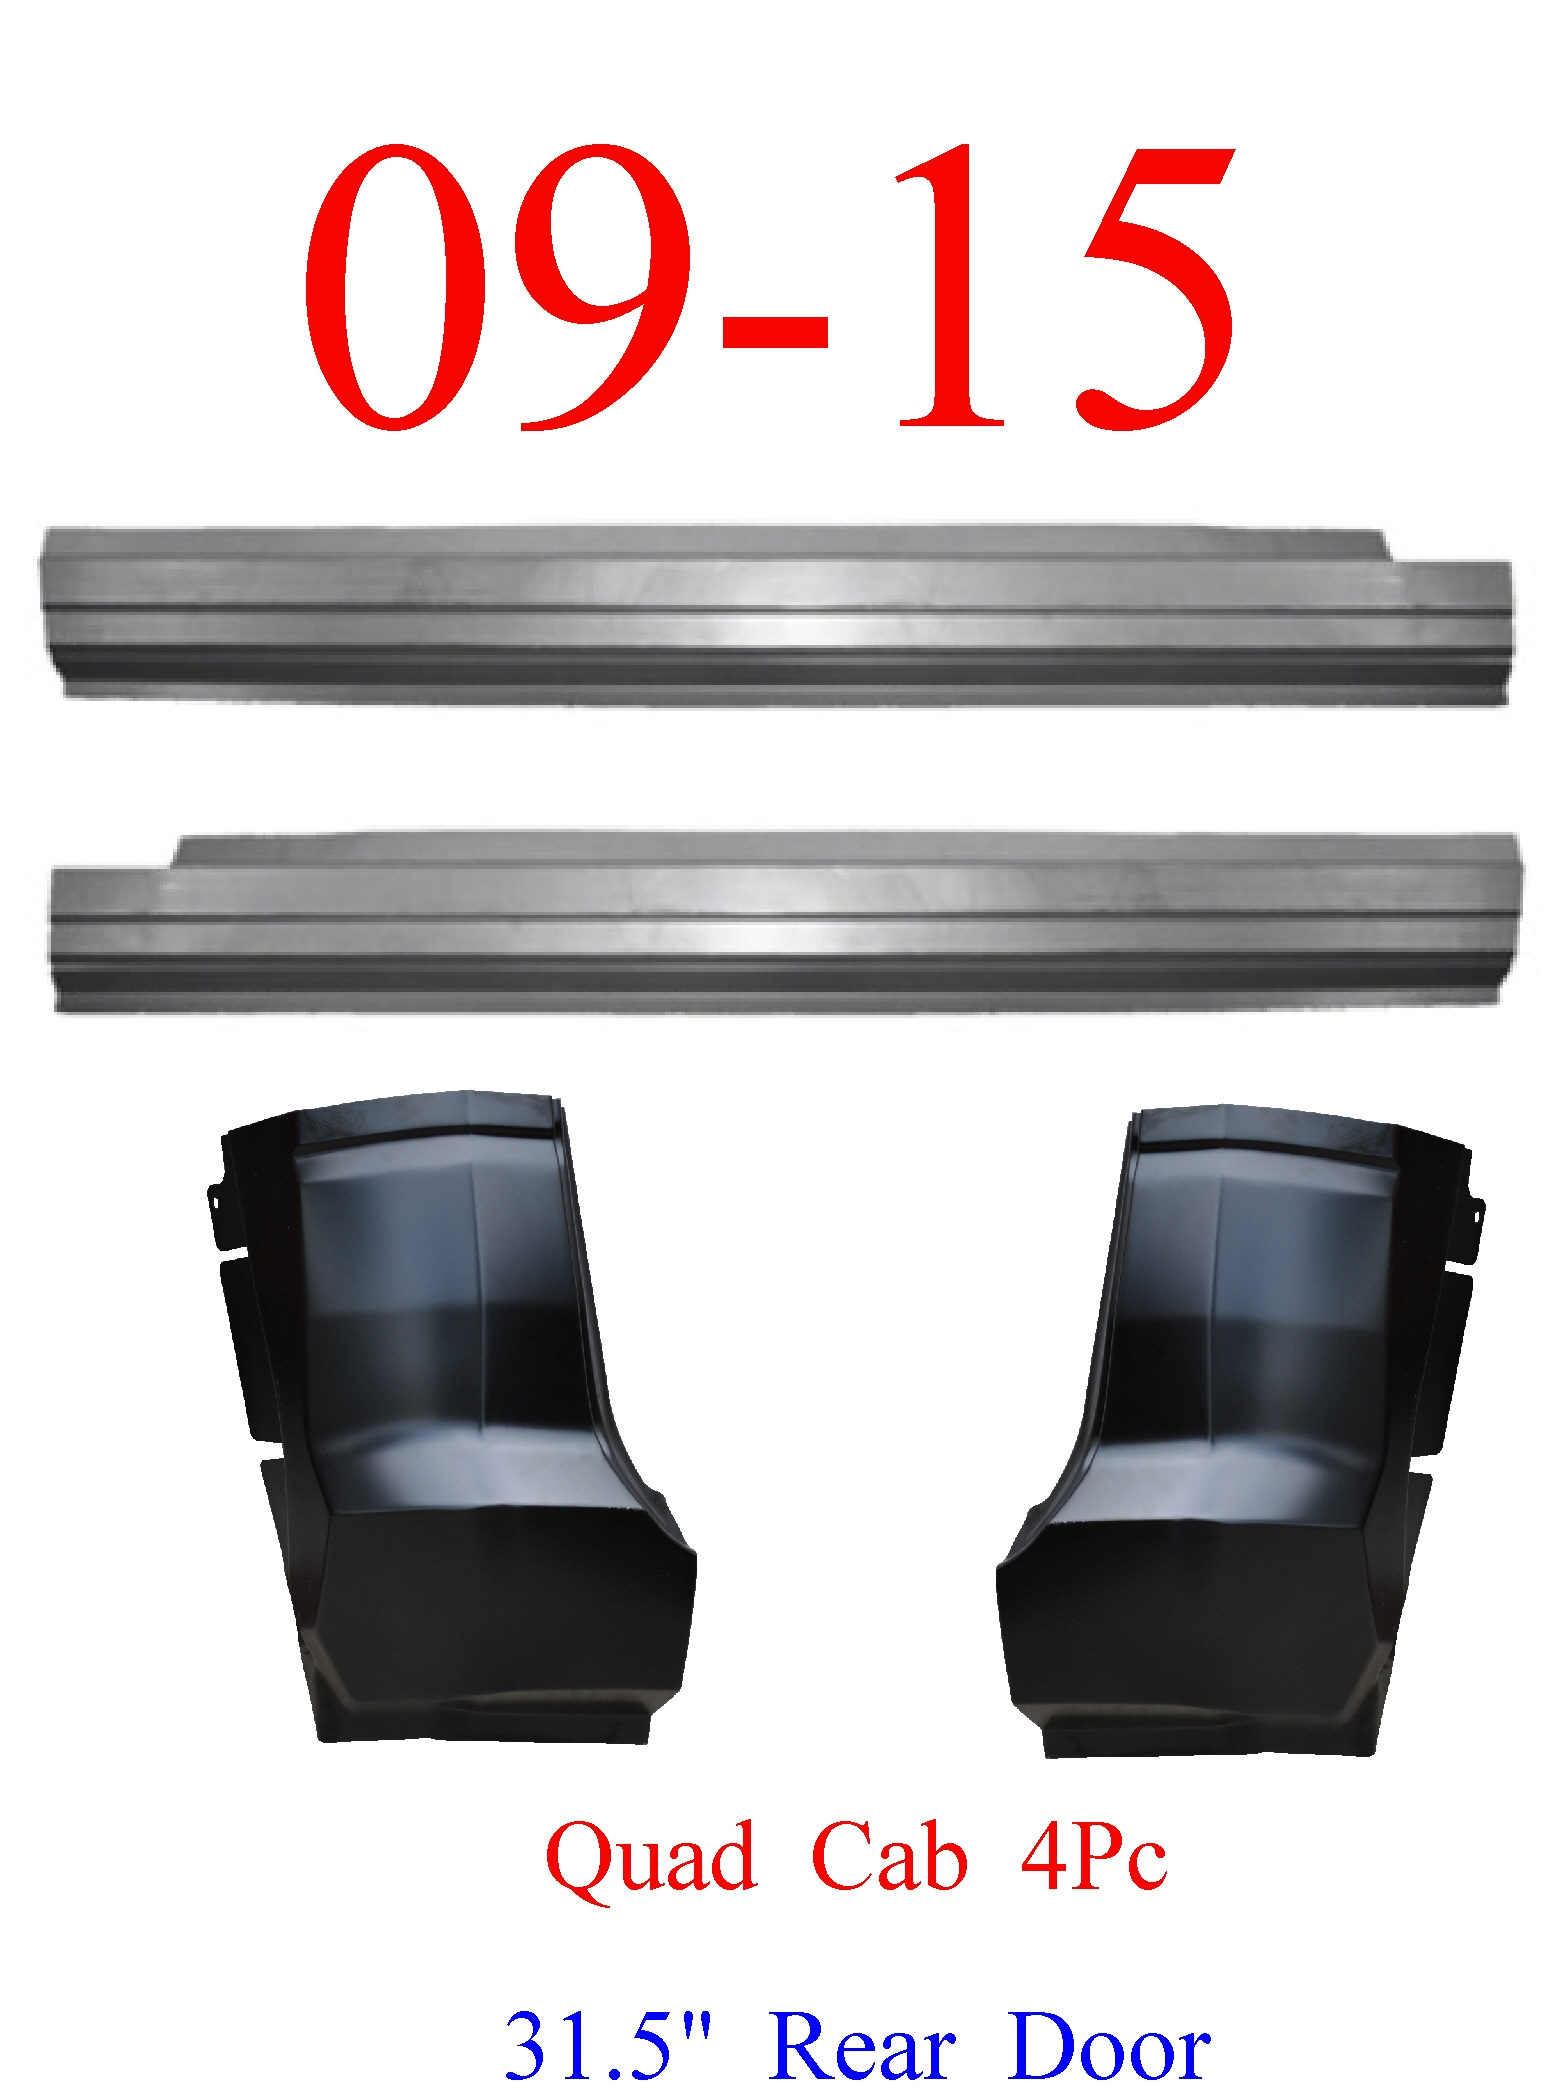 09-15 Ram 4Pc Outer Rocker & Cab Corner Kit, Quad Cab, Truck